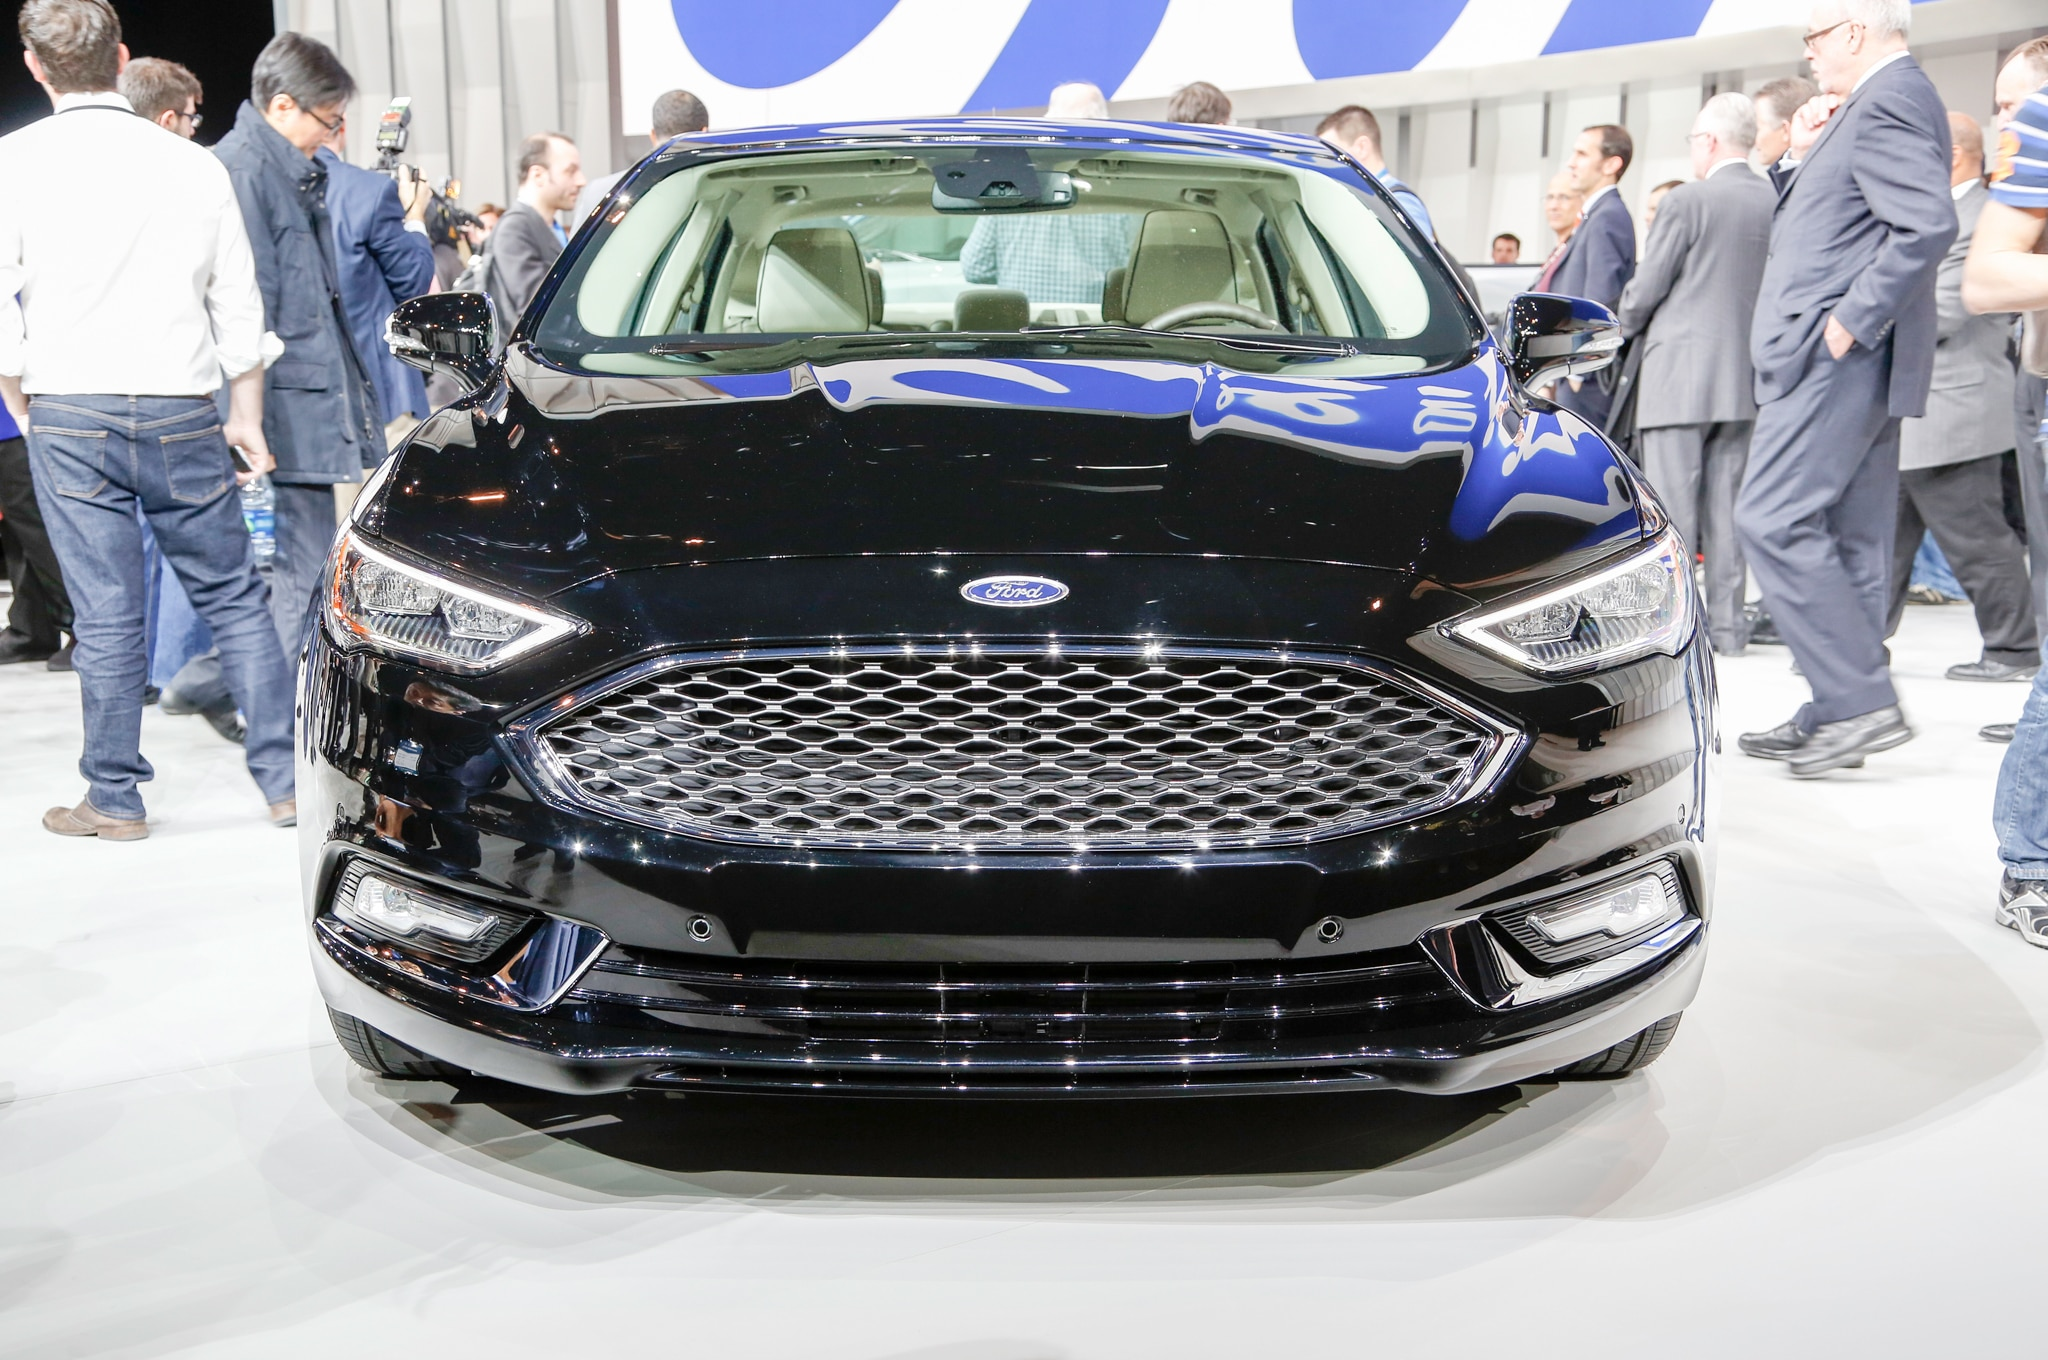 Focus St Aftermarket Grill >> 2017 Ford Fusion Refreshed for Detroit, Adds 325-HP V6 Sport Model